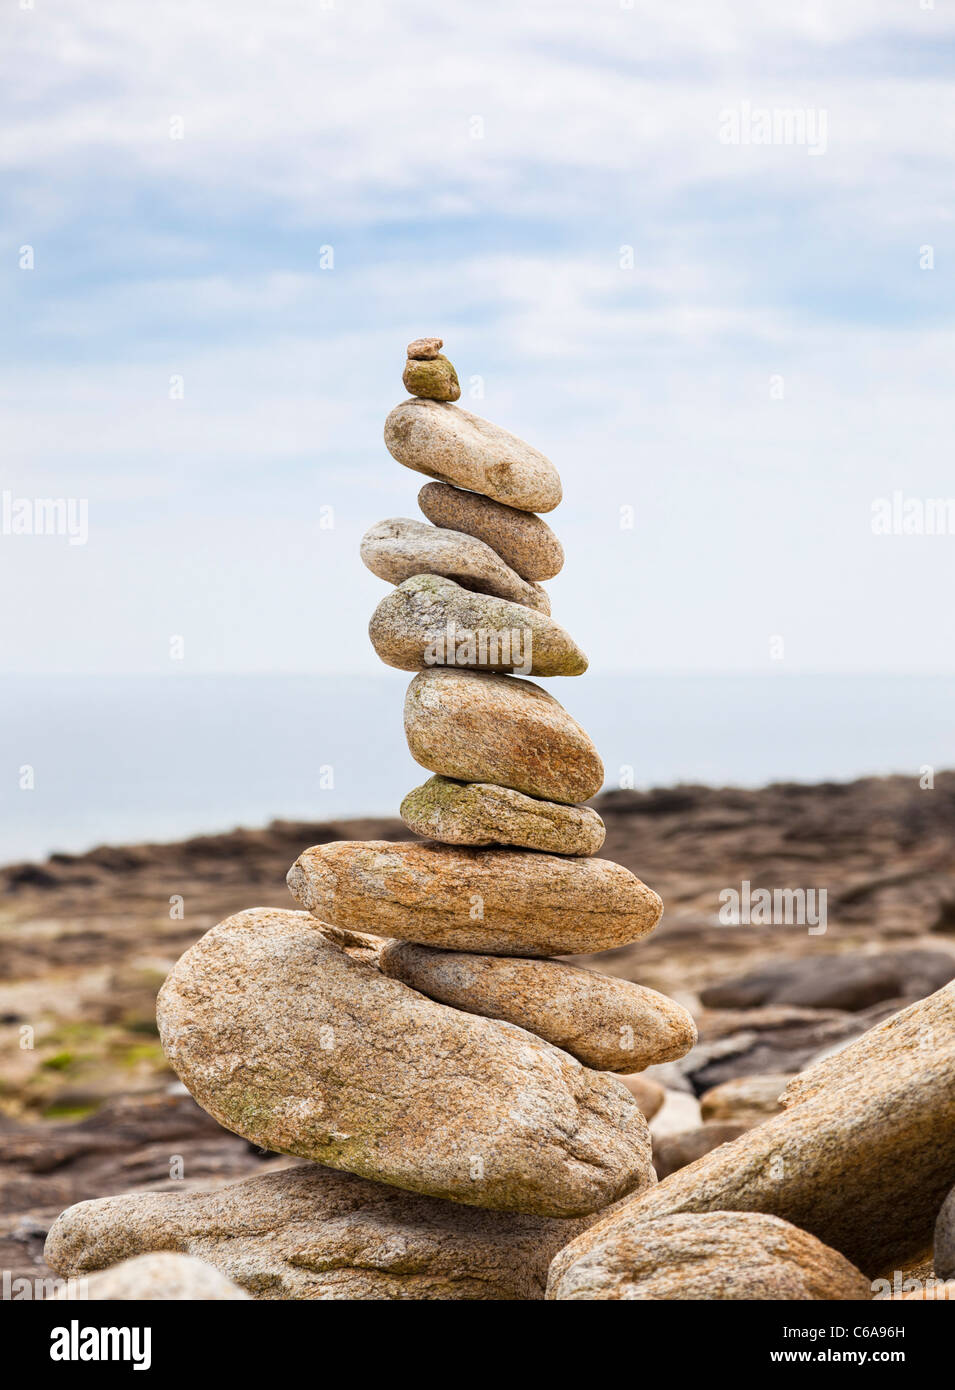 Pebbles balanced in a pile on a beach - Stock Image